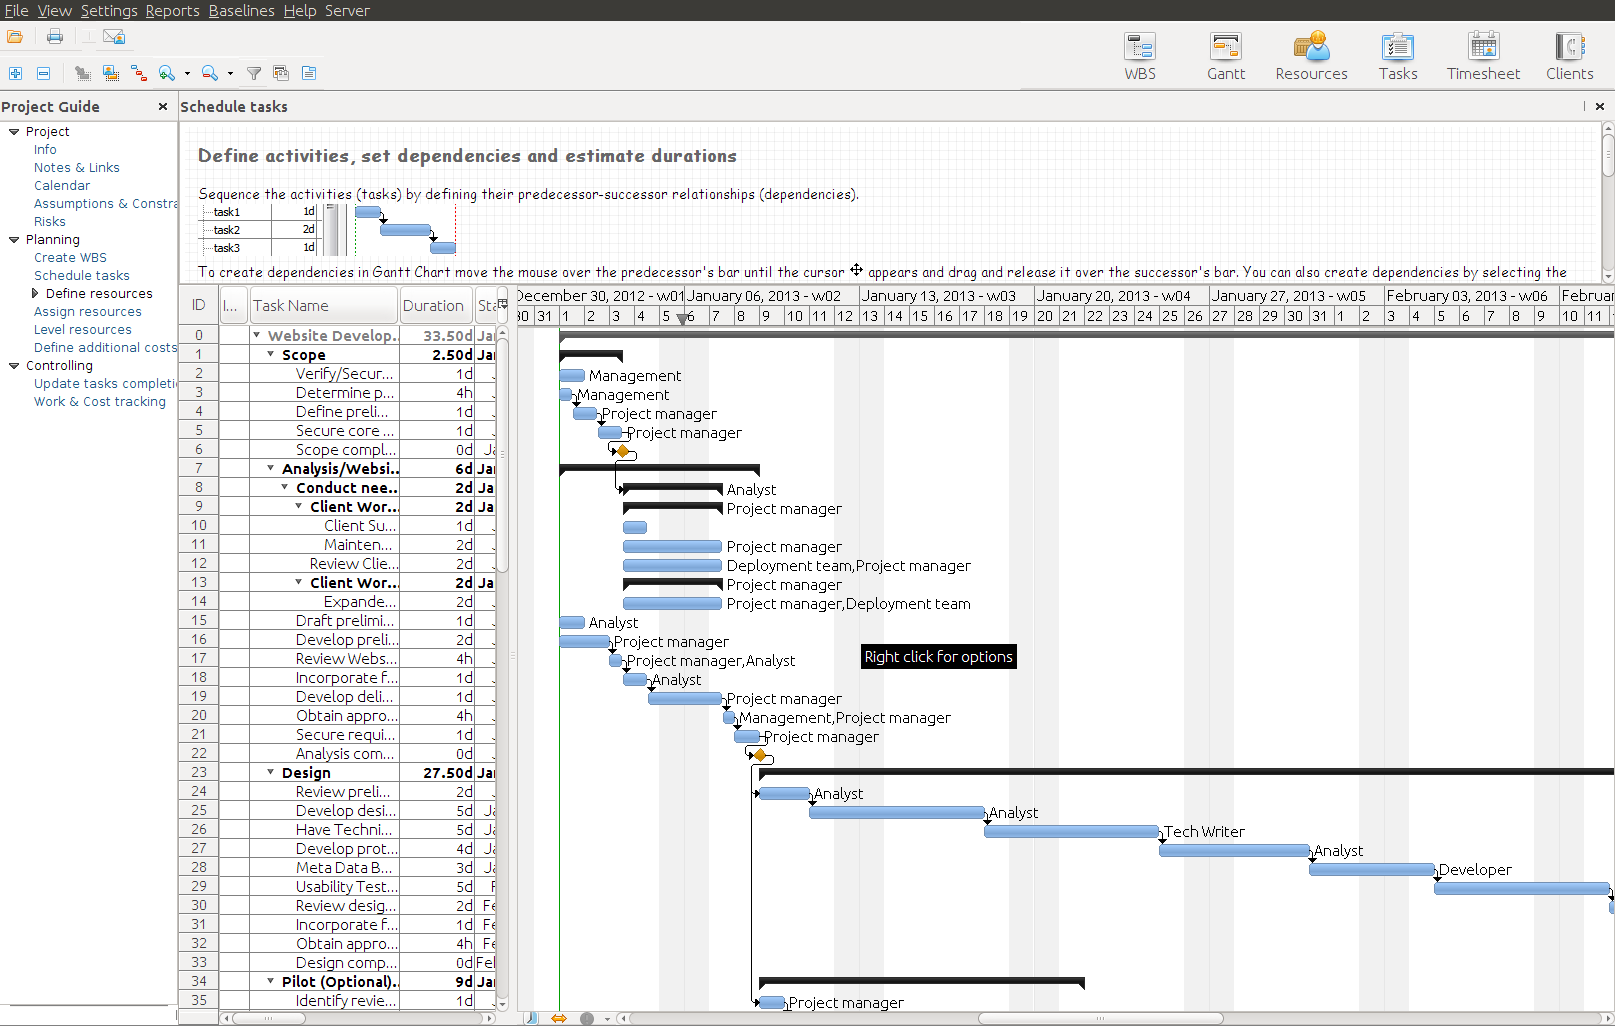 RationalPlan Project Viewer for Linux 5.0.7699